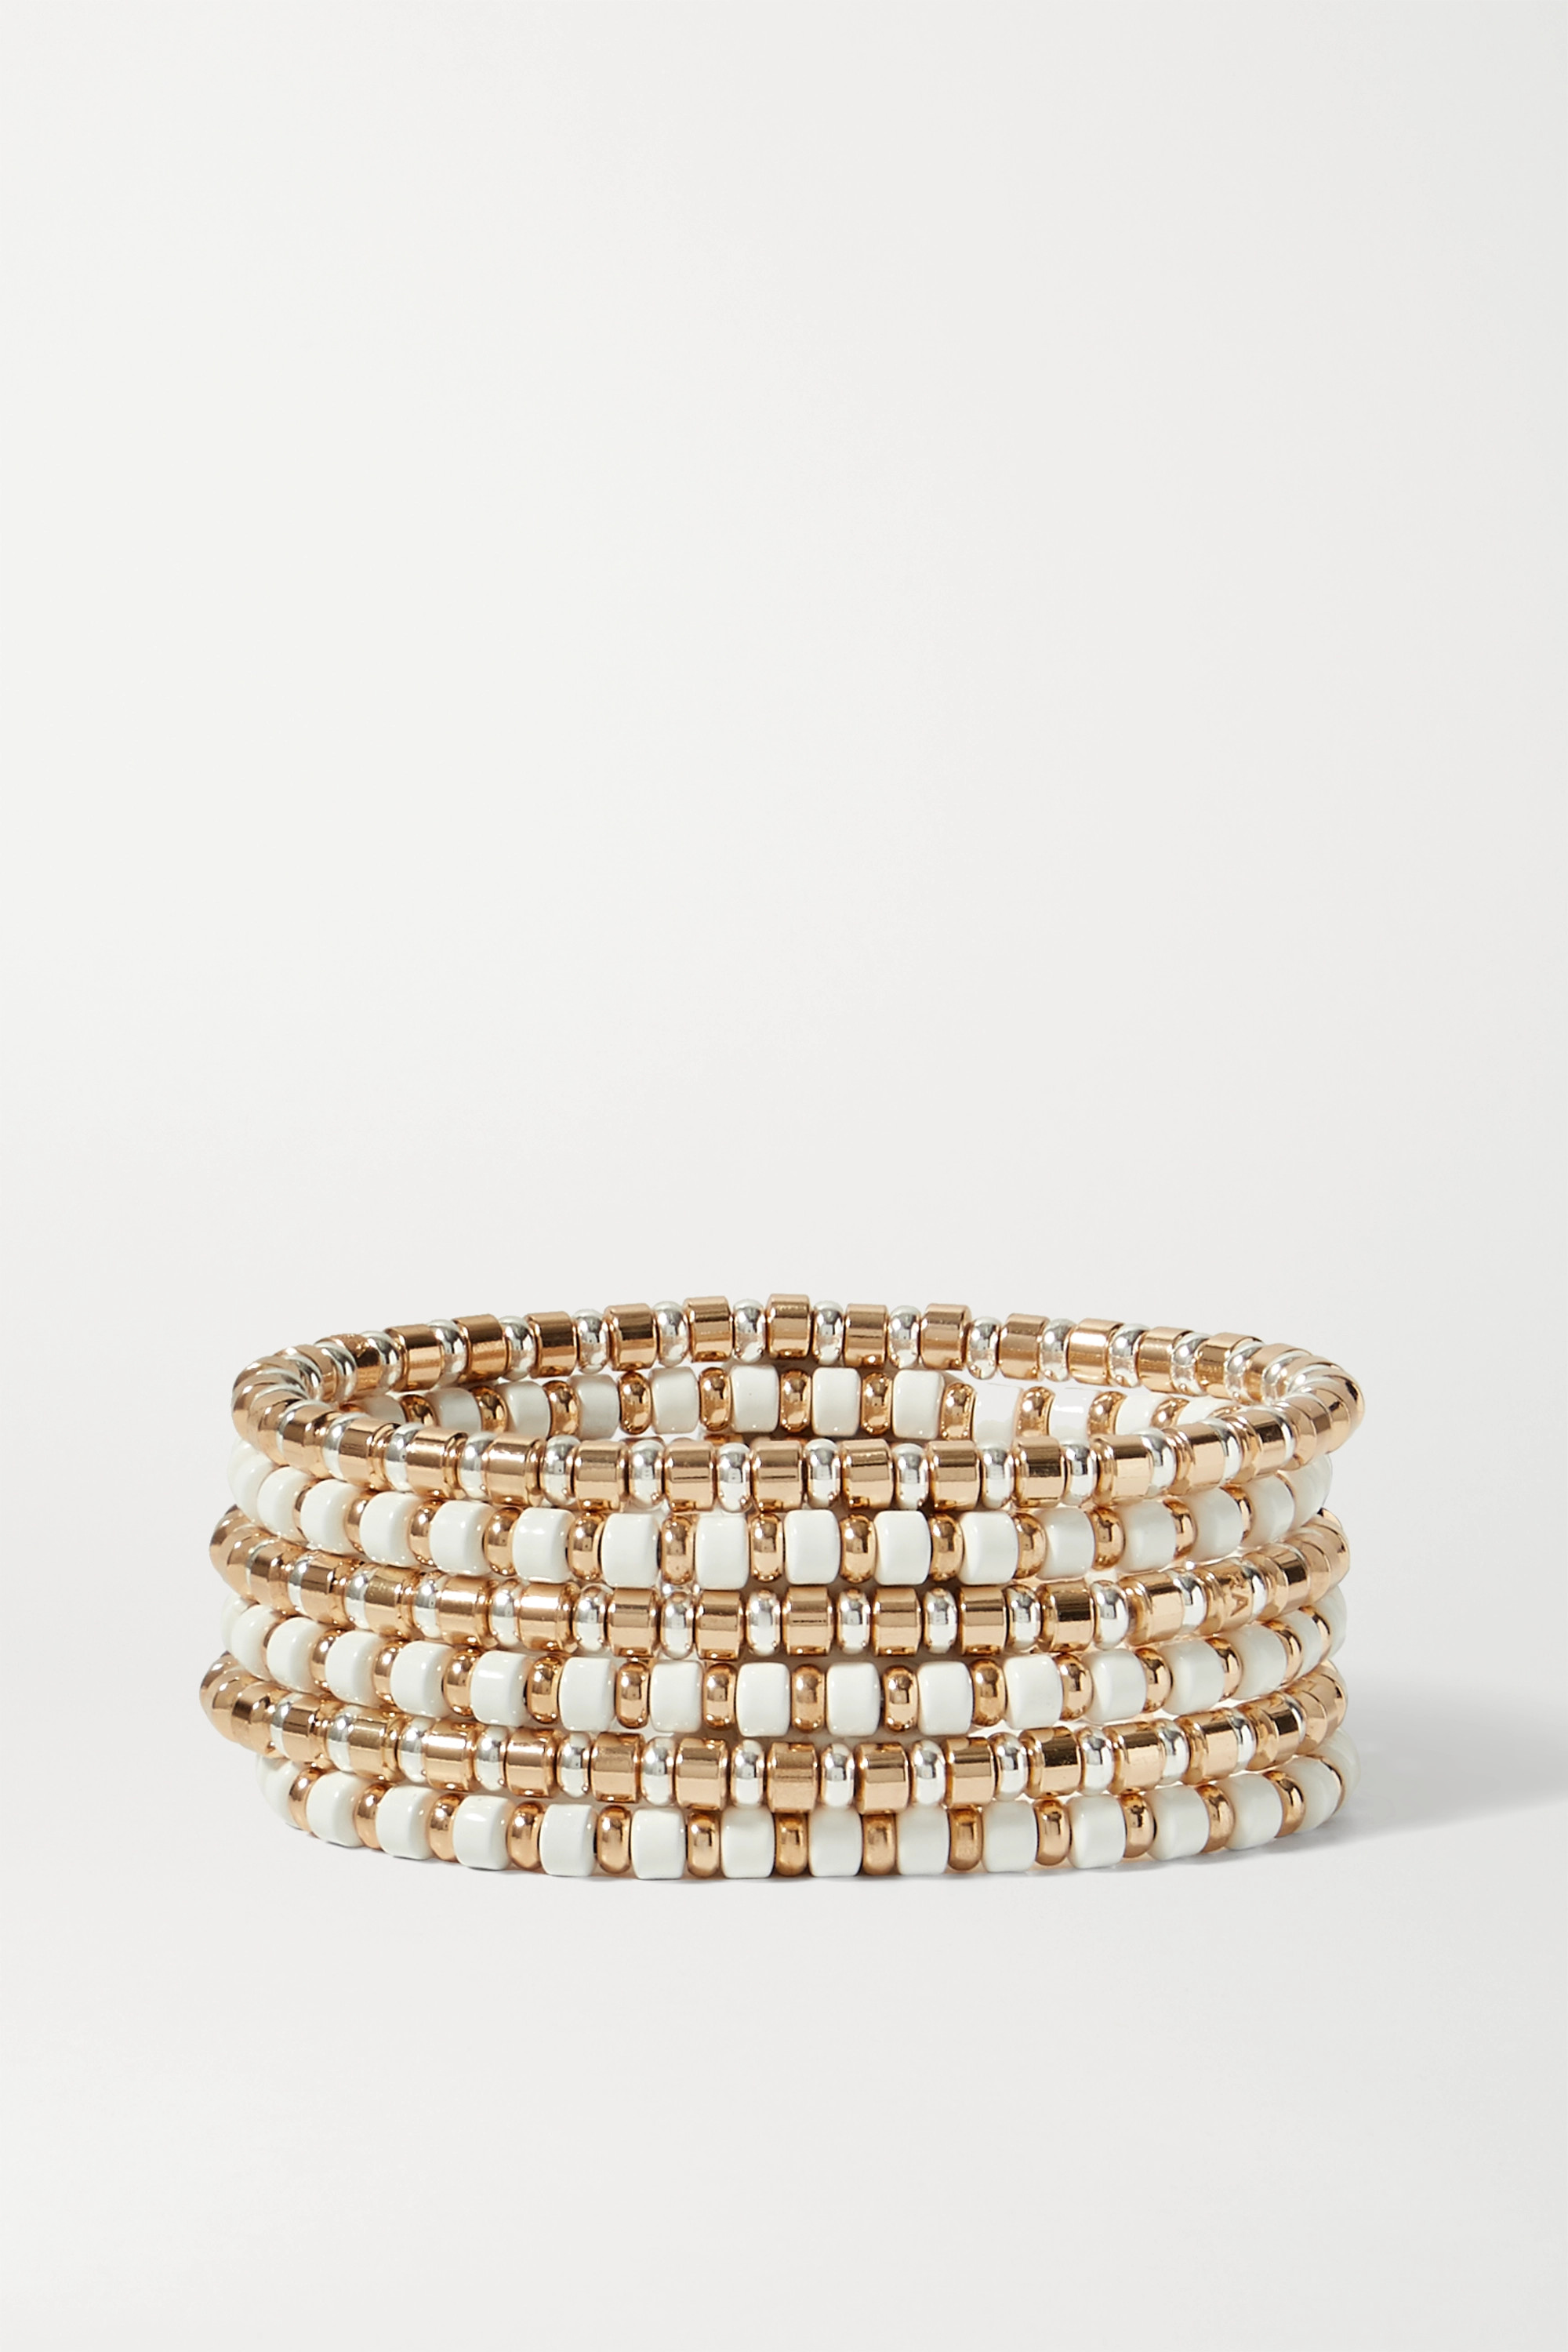 Roxanne Assoulin Little Ones set of six gold and silver-tone and enamel bracelets